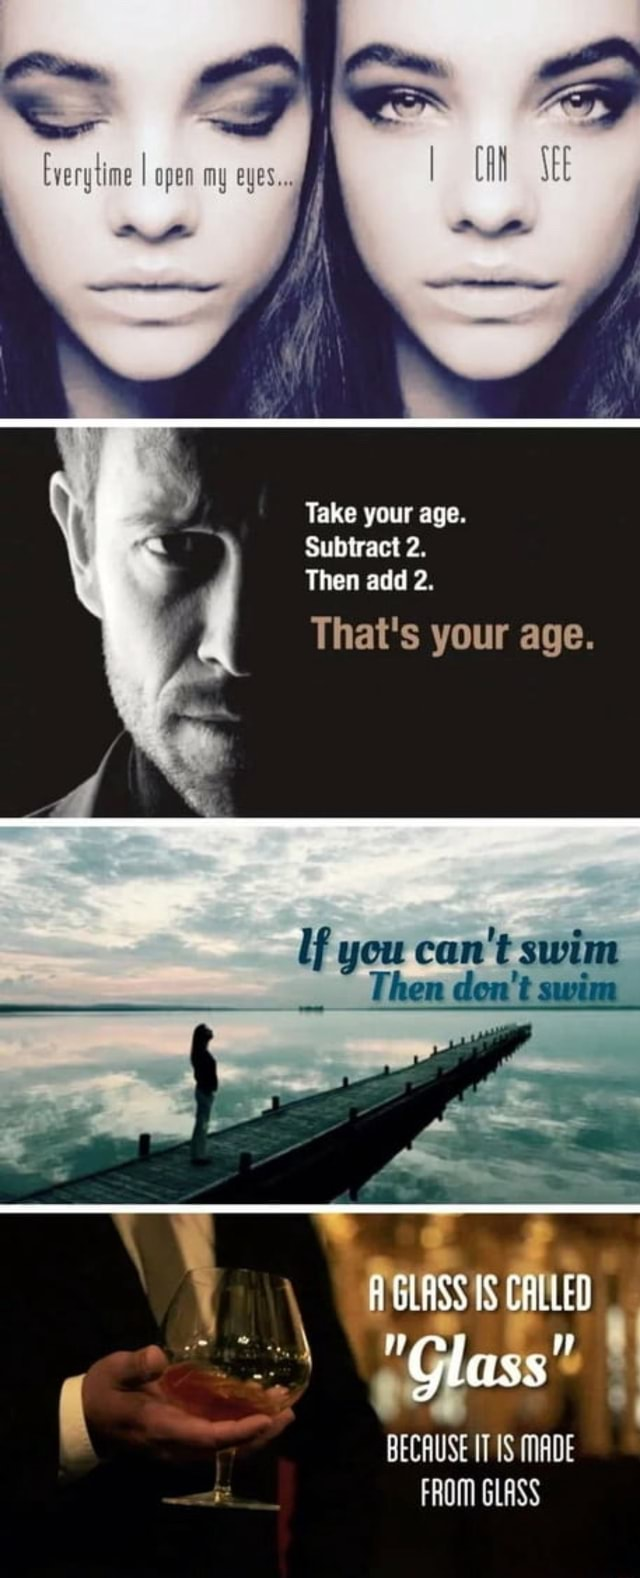 I ag eyes Take your age. Subtract 2. Then add 2. That's your age. Then do not swi   5 IS CALLED BECAUSE IT IS MADE FROM GLASS memes